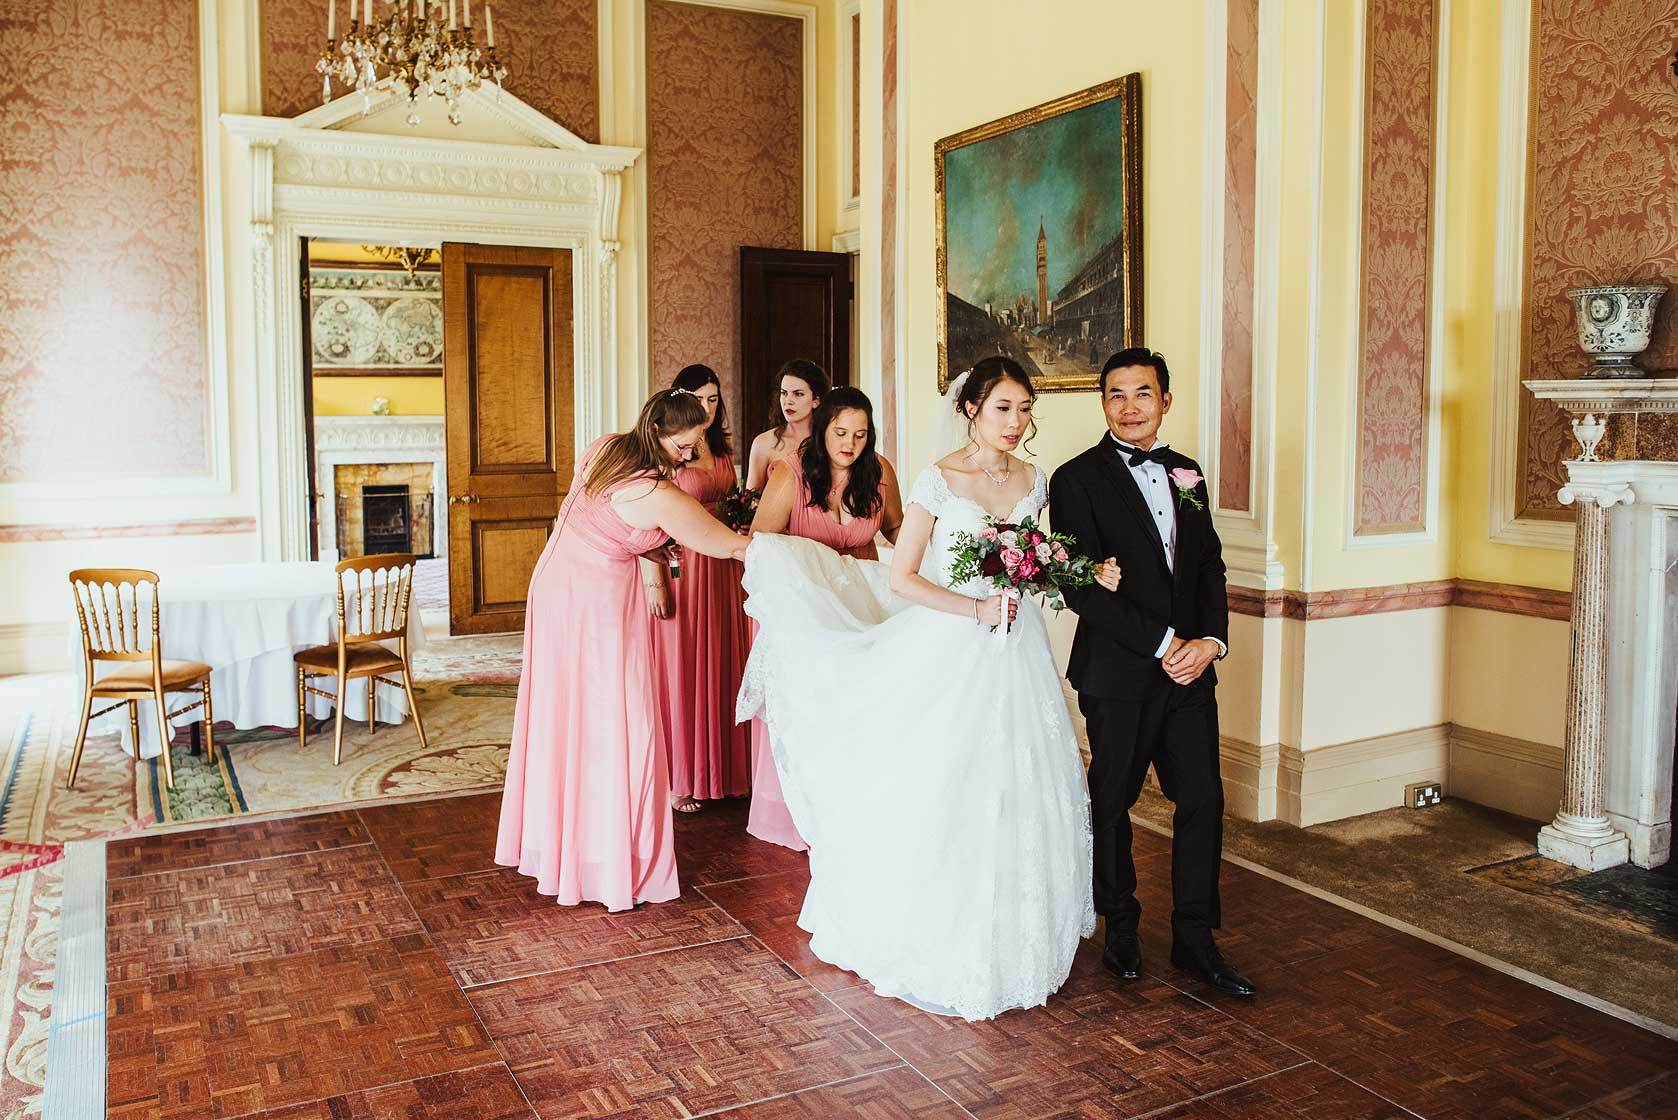 Wedding Photographer at Stoke Park